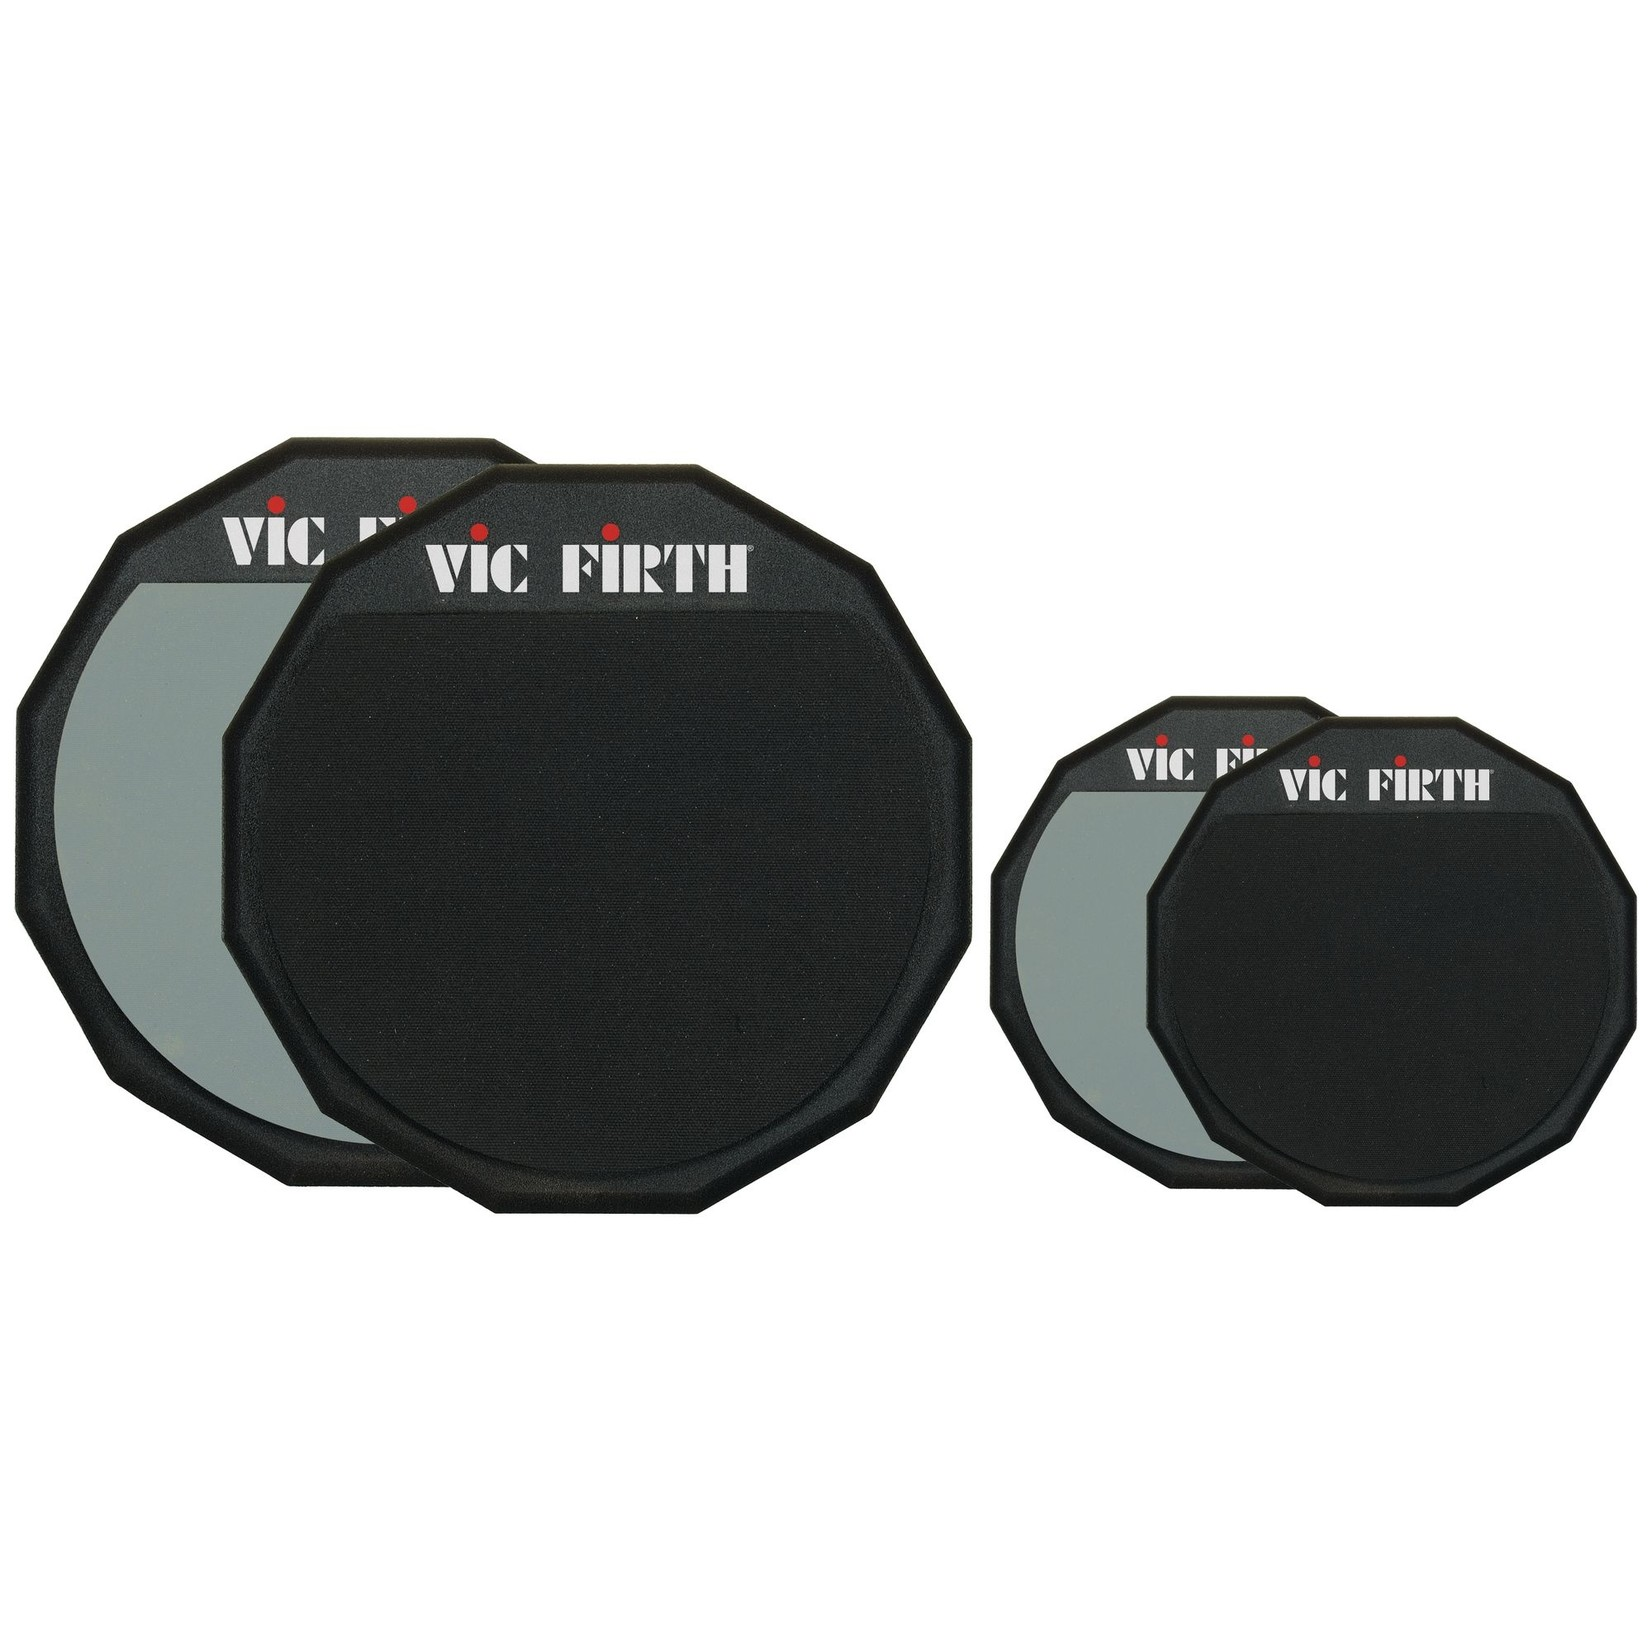 "Vic Firth Vic Firth 12"" Double-Sided Pratice Pad"